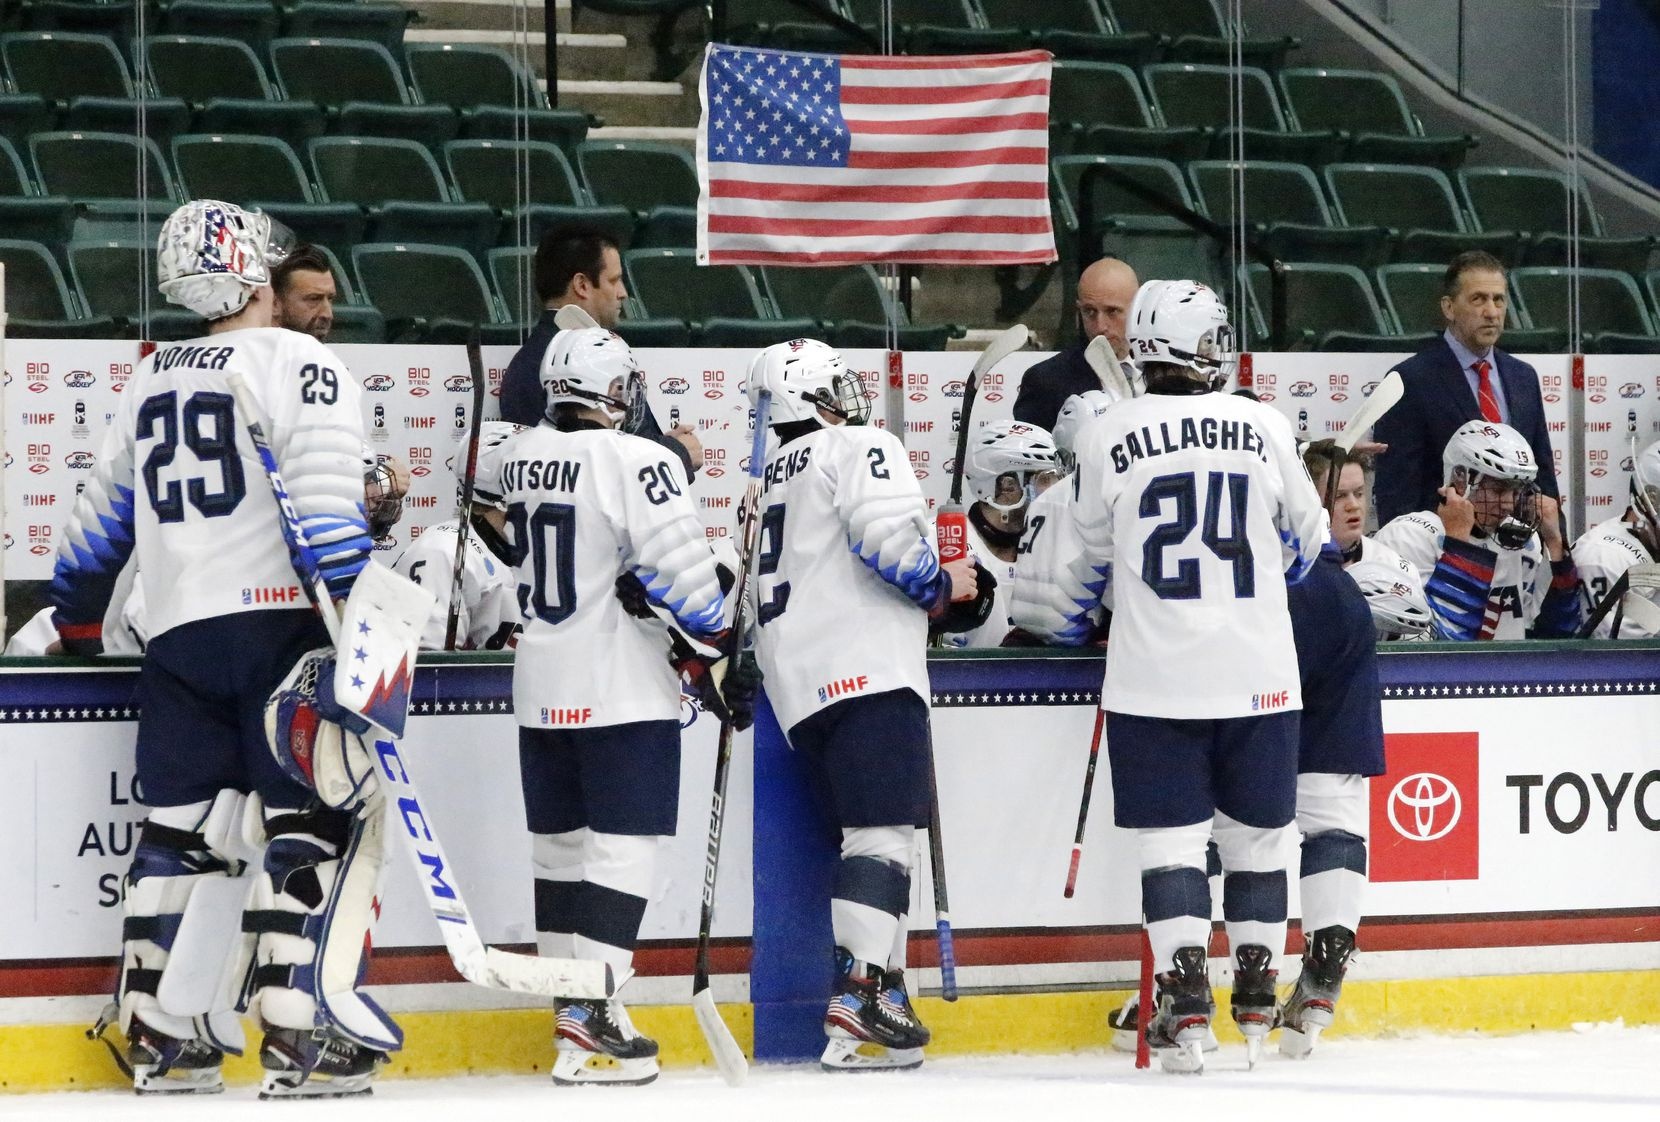 Team USA approached the bench during a break in the action in the first period of the IIHF Ice Hockey U18 World Championship at the Comerica Arena on Monday in Frisco.